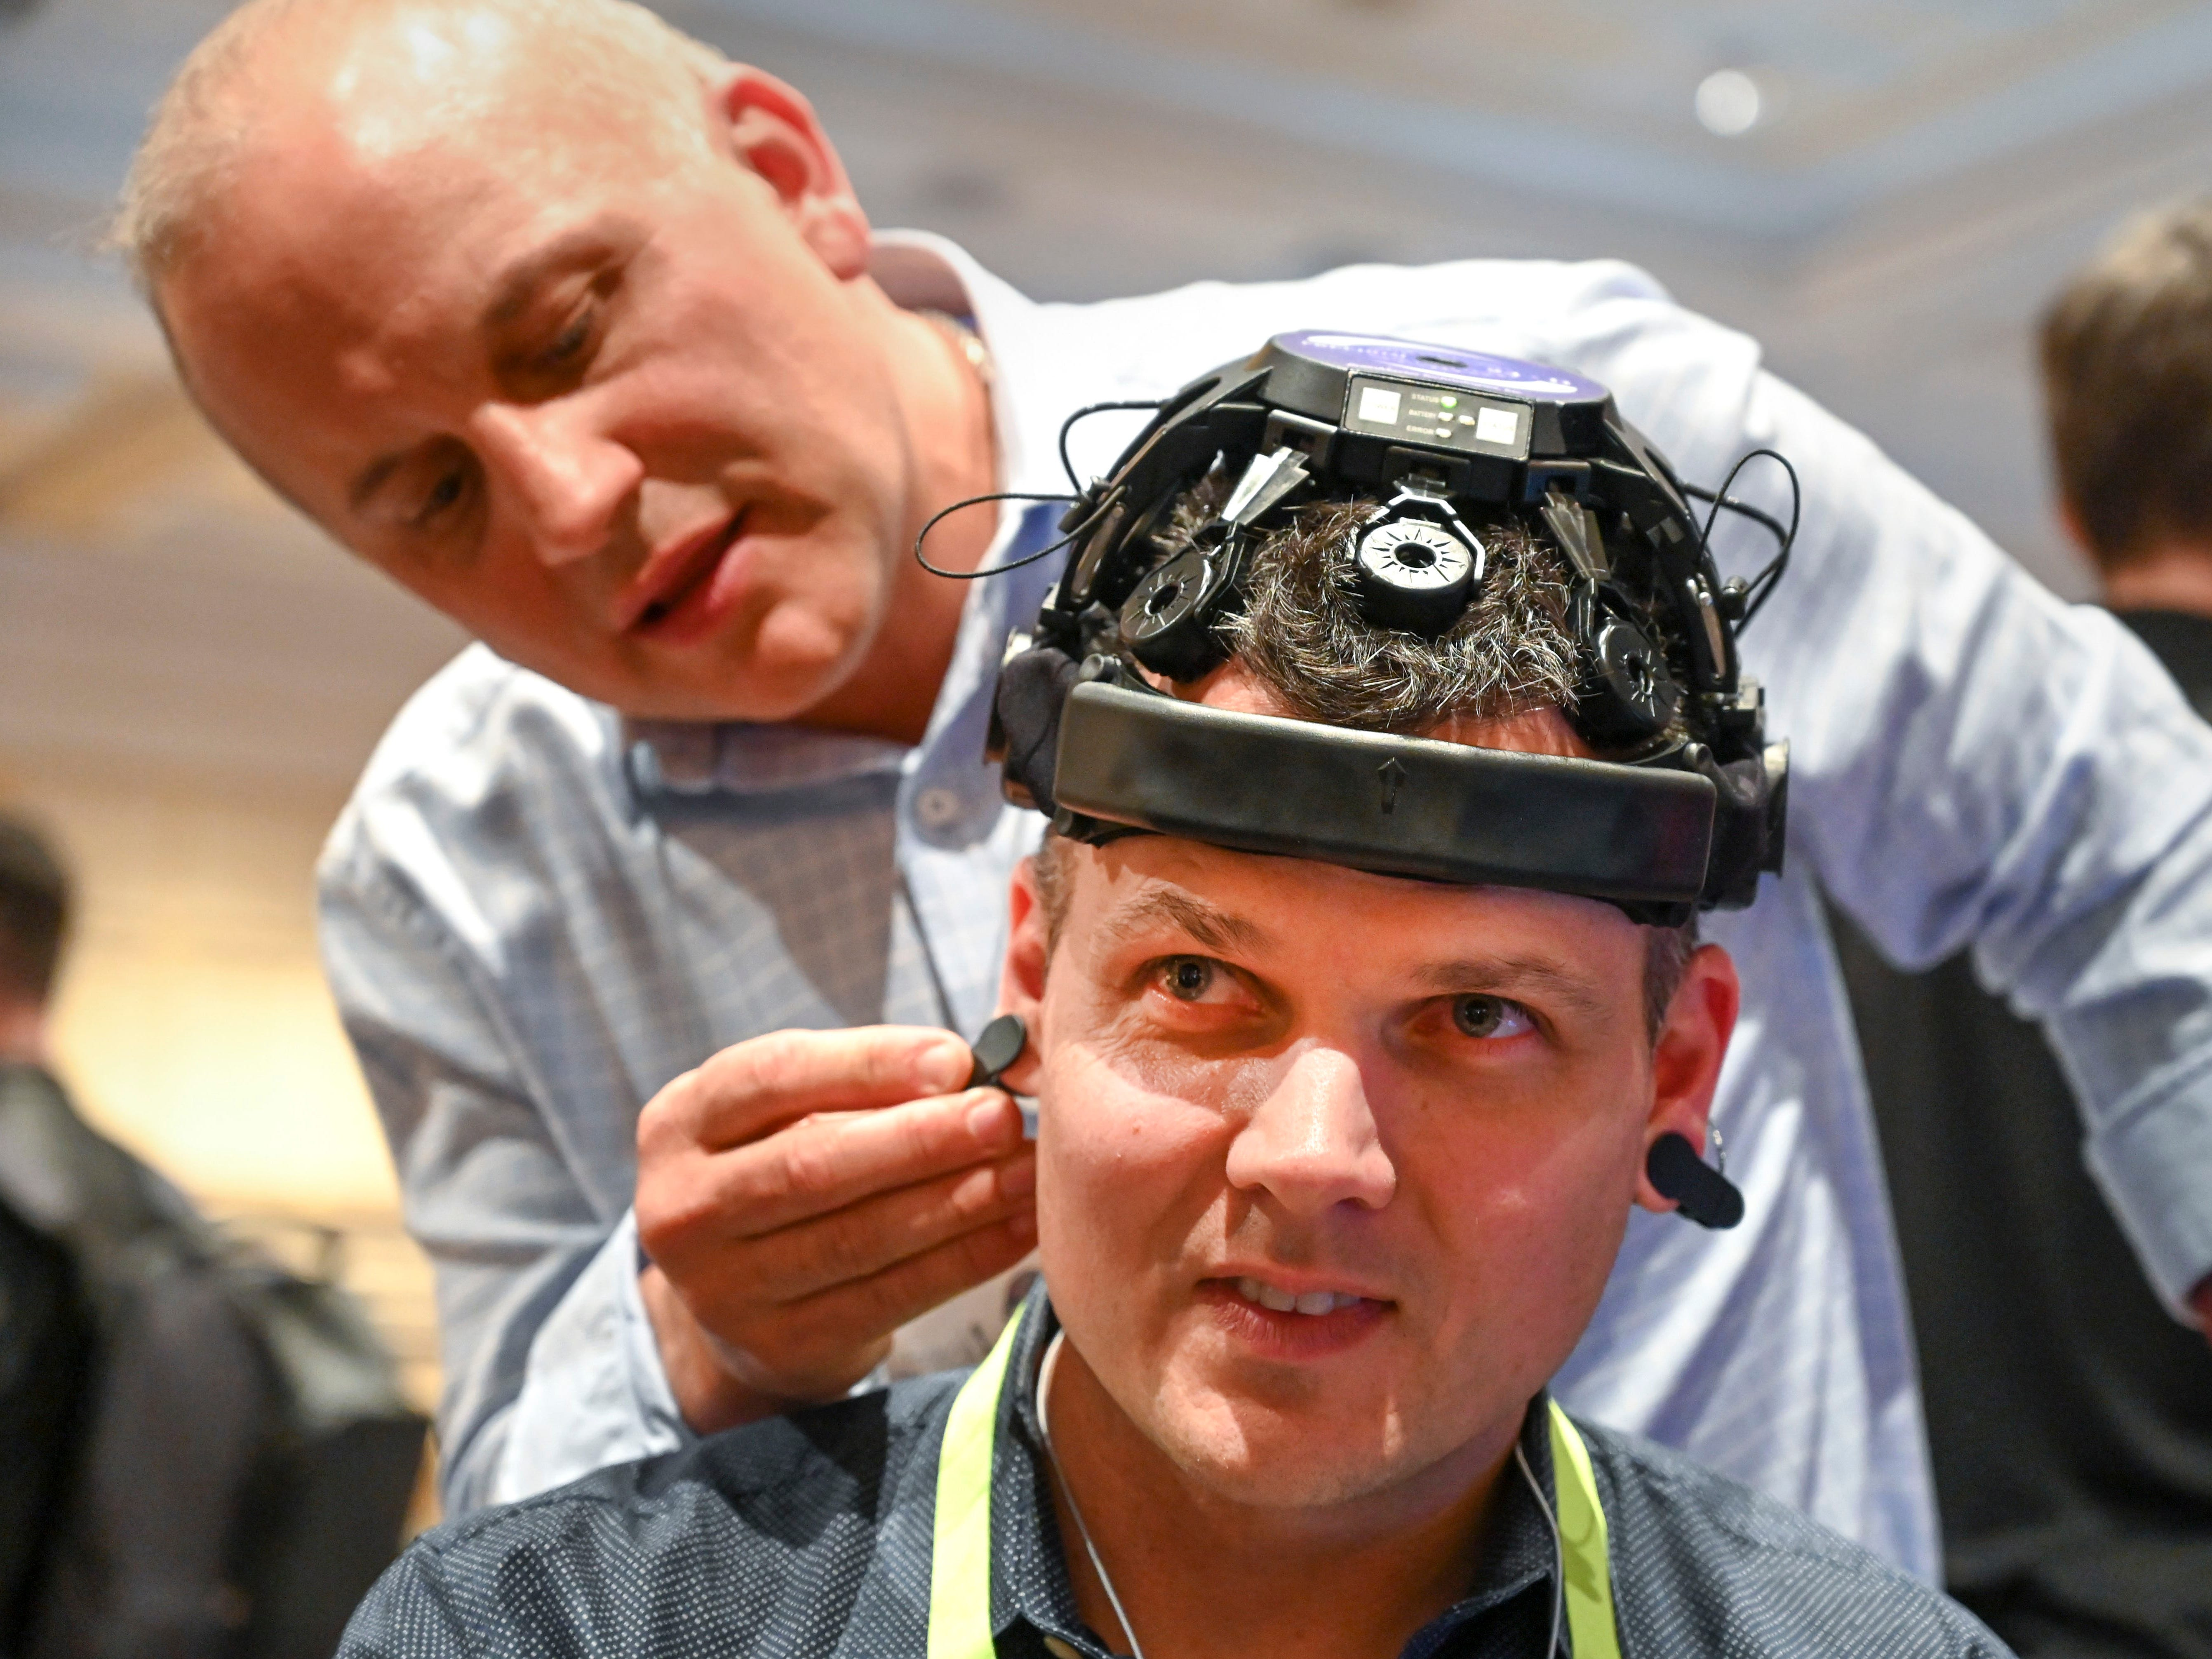 Mark Spoonauer has a brain scan performed by Dr. Mark Debrincat at the eSmartr.  eSmartr was demonstrating their eSmartr Sleev that tests their cognitive boost technology.